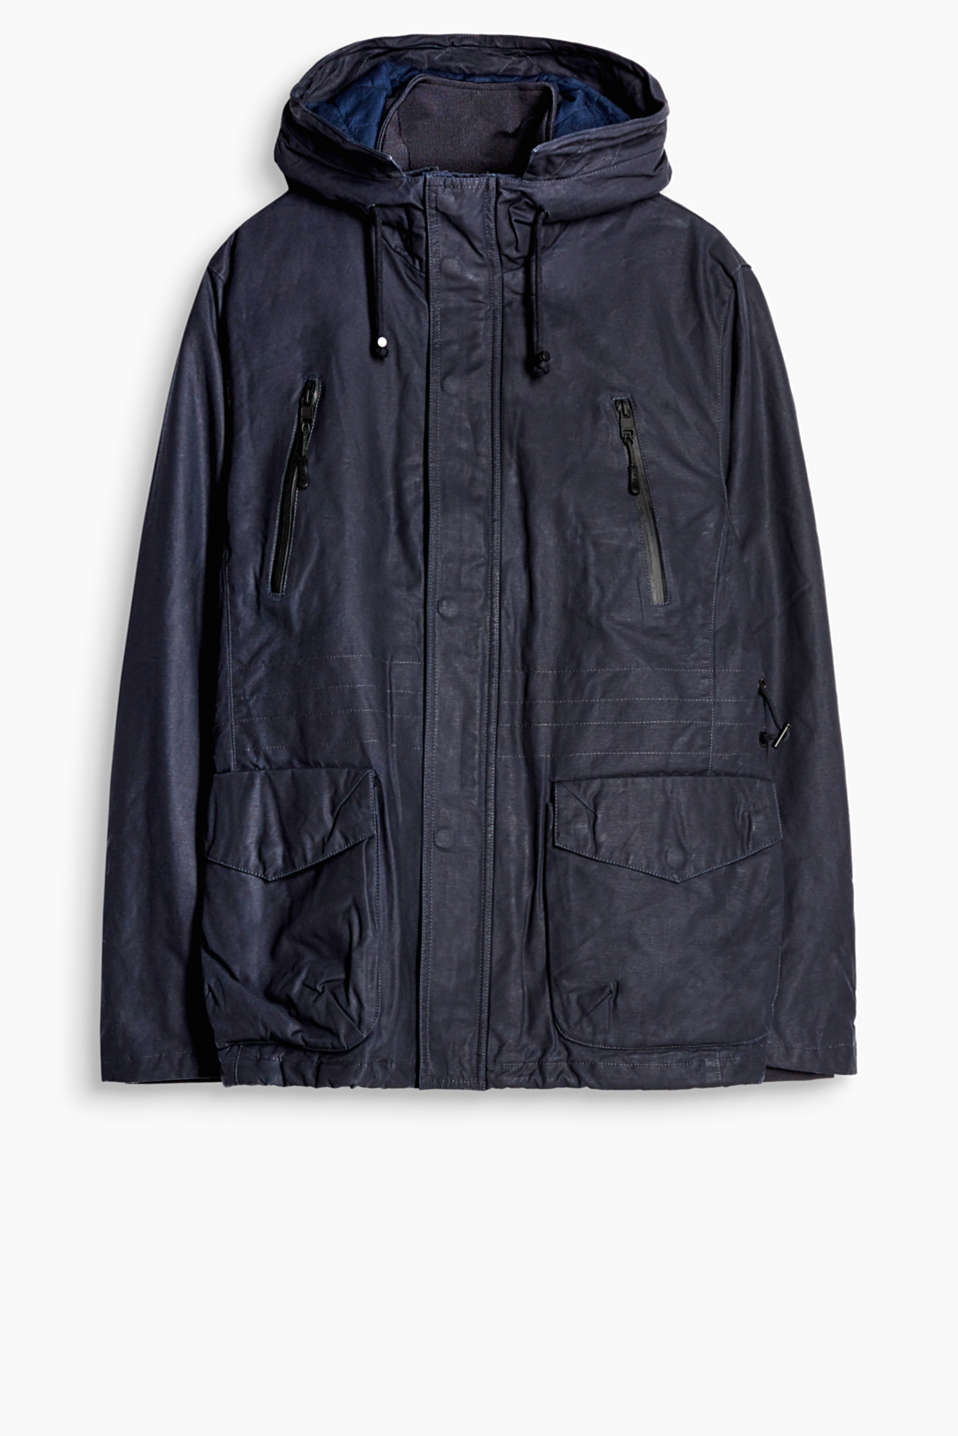 An outerwear classic! This padded jacket has a hood and understated details.